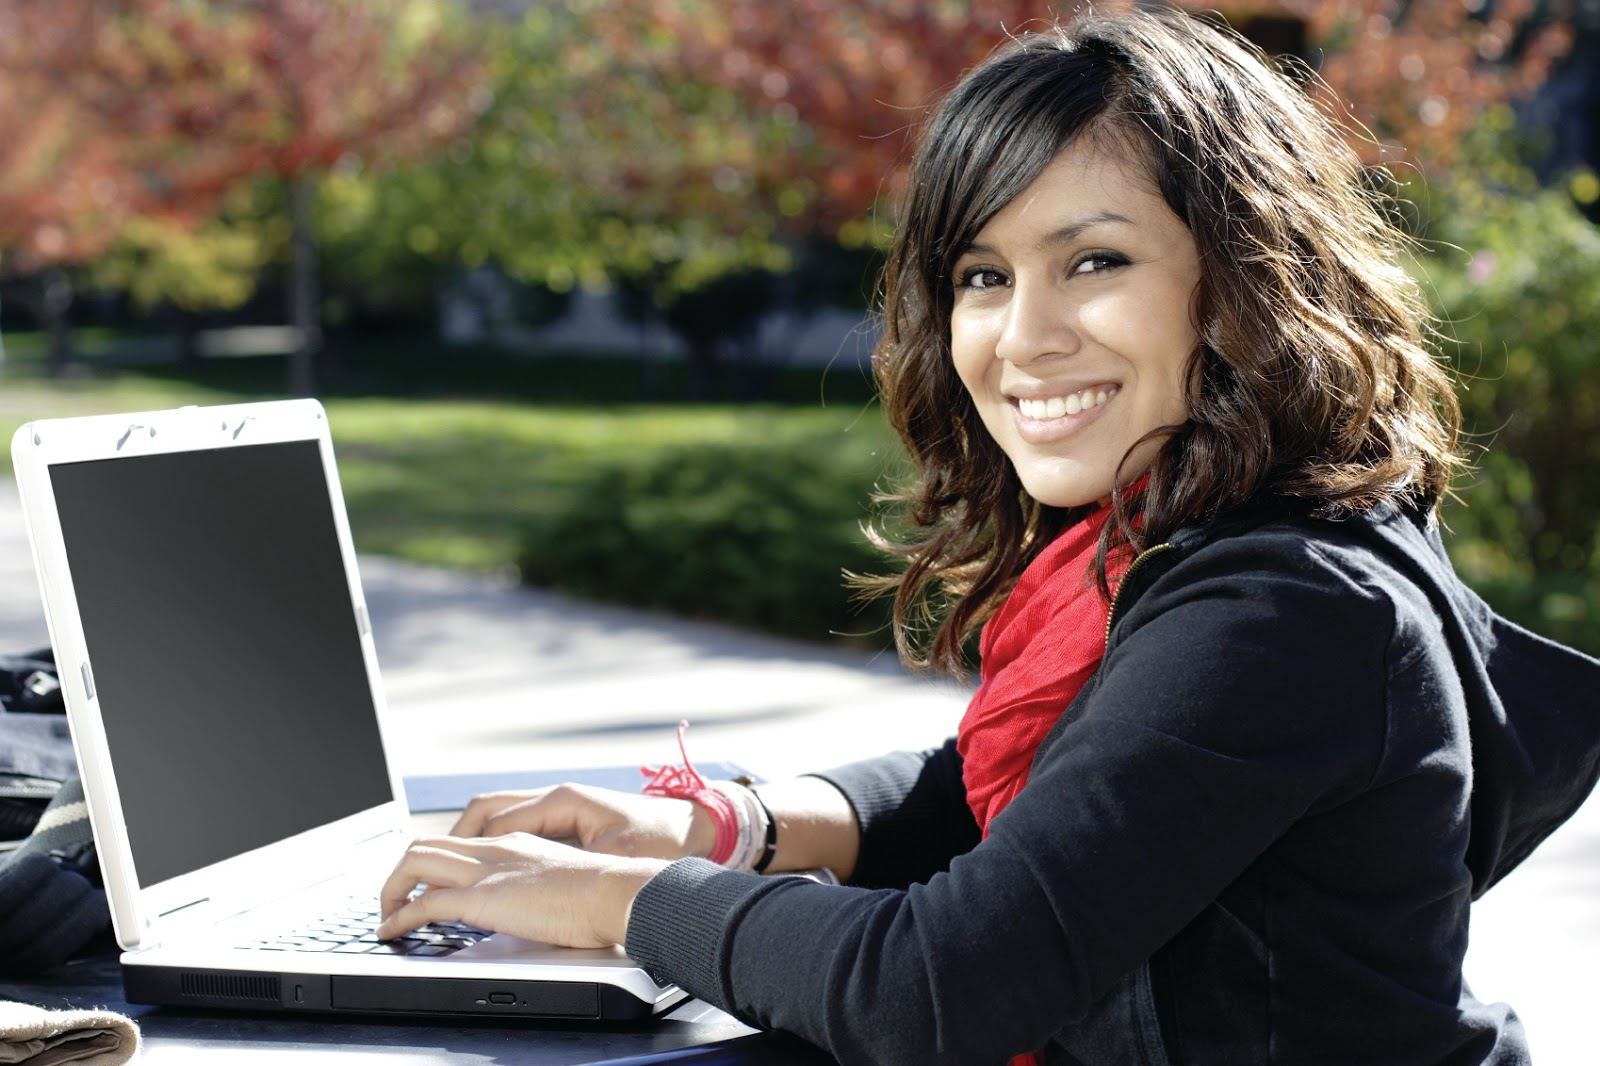 Doorstep loans are the types of loans that a borrower can avail right at his doorstep. These loans are delivered at the doorstep of the borrower.